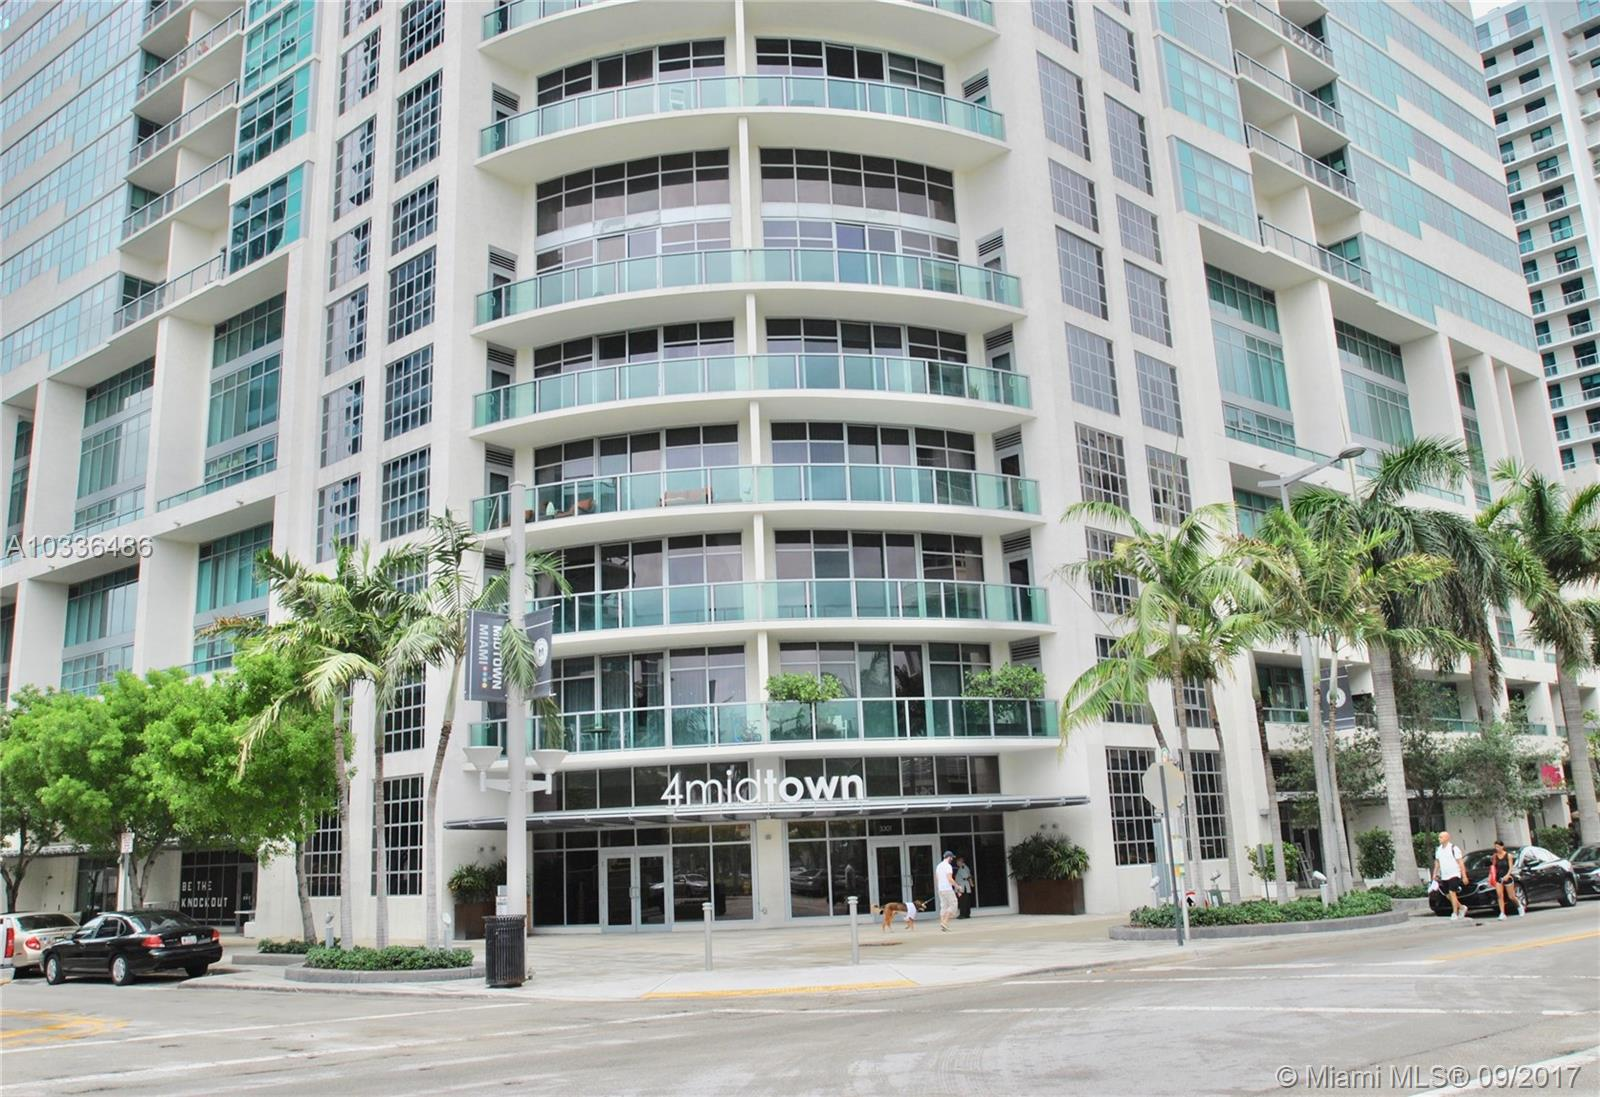 3301 NE 1st Ave, H1813 - Miami, Florida